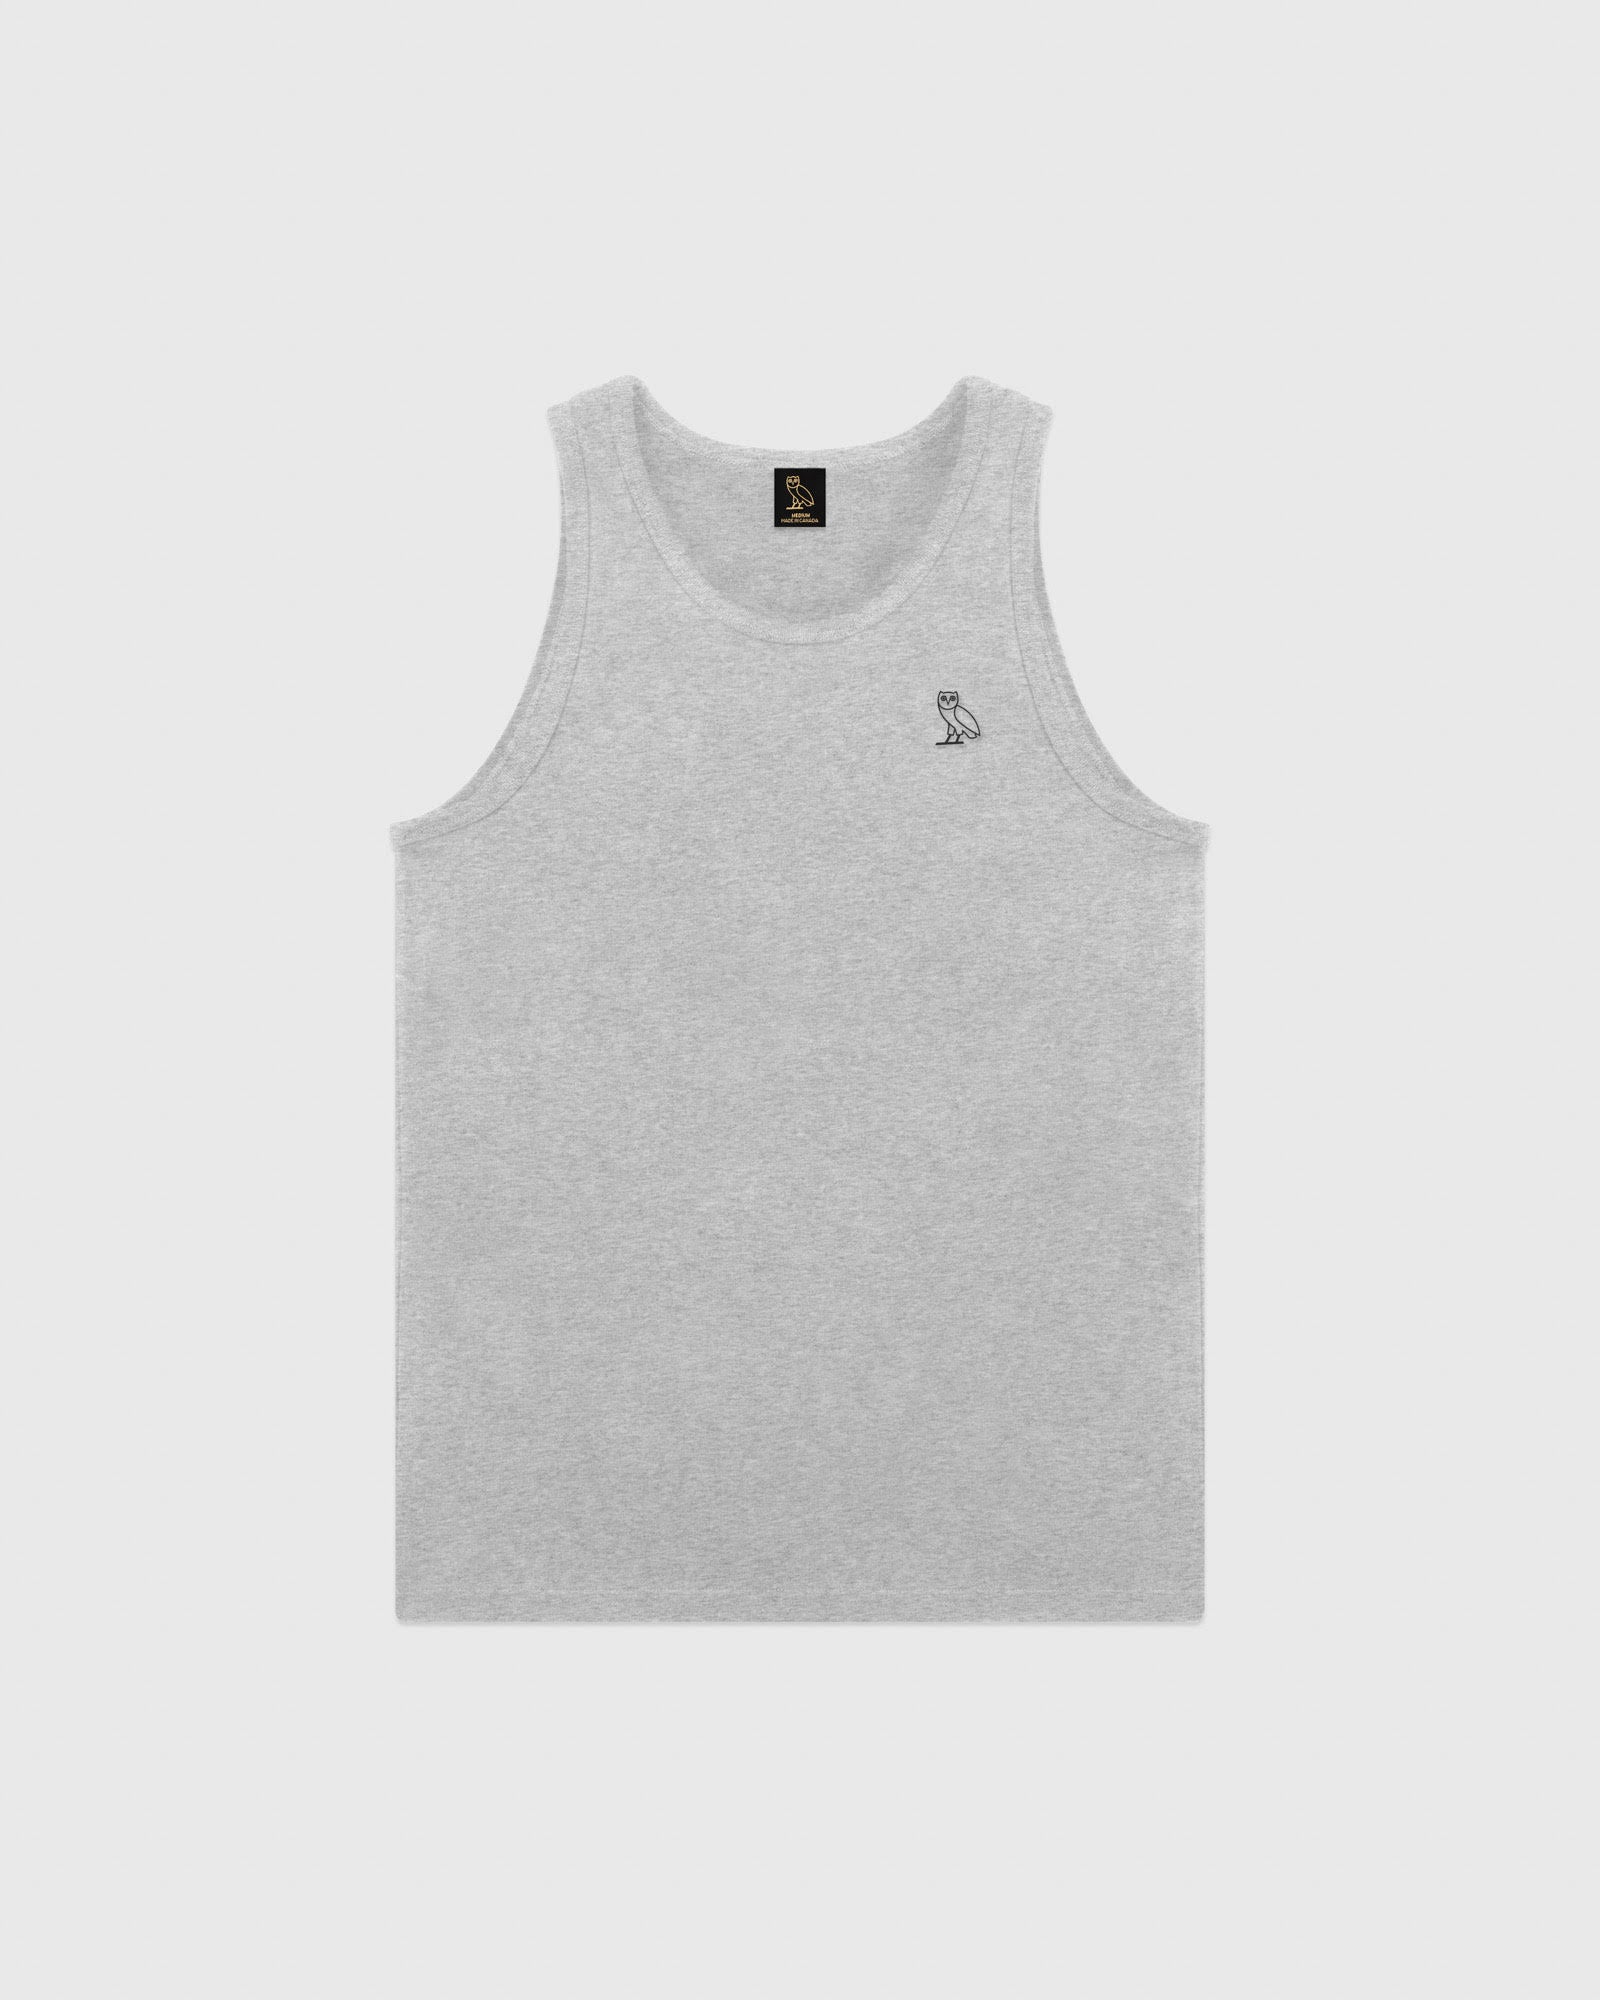 ESSENTIAL OWL TANK TOP - HEATHER GREY IMAGE #1